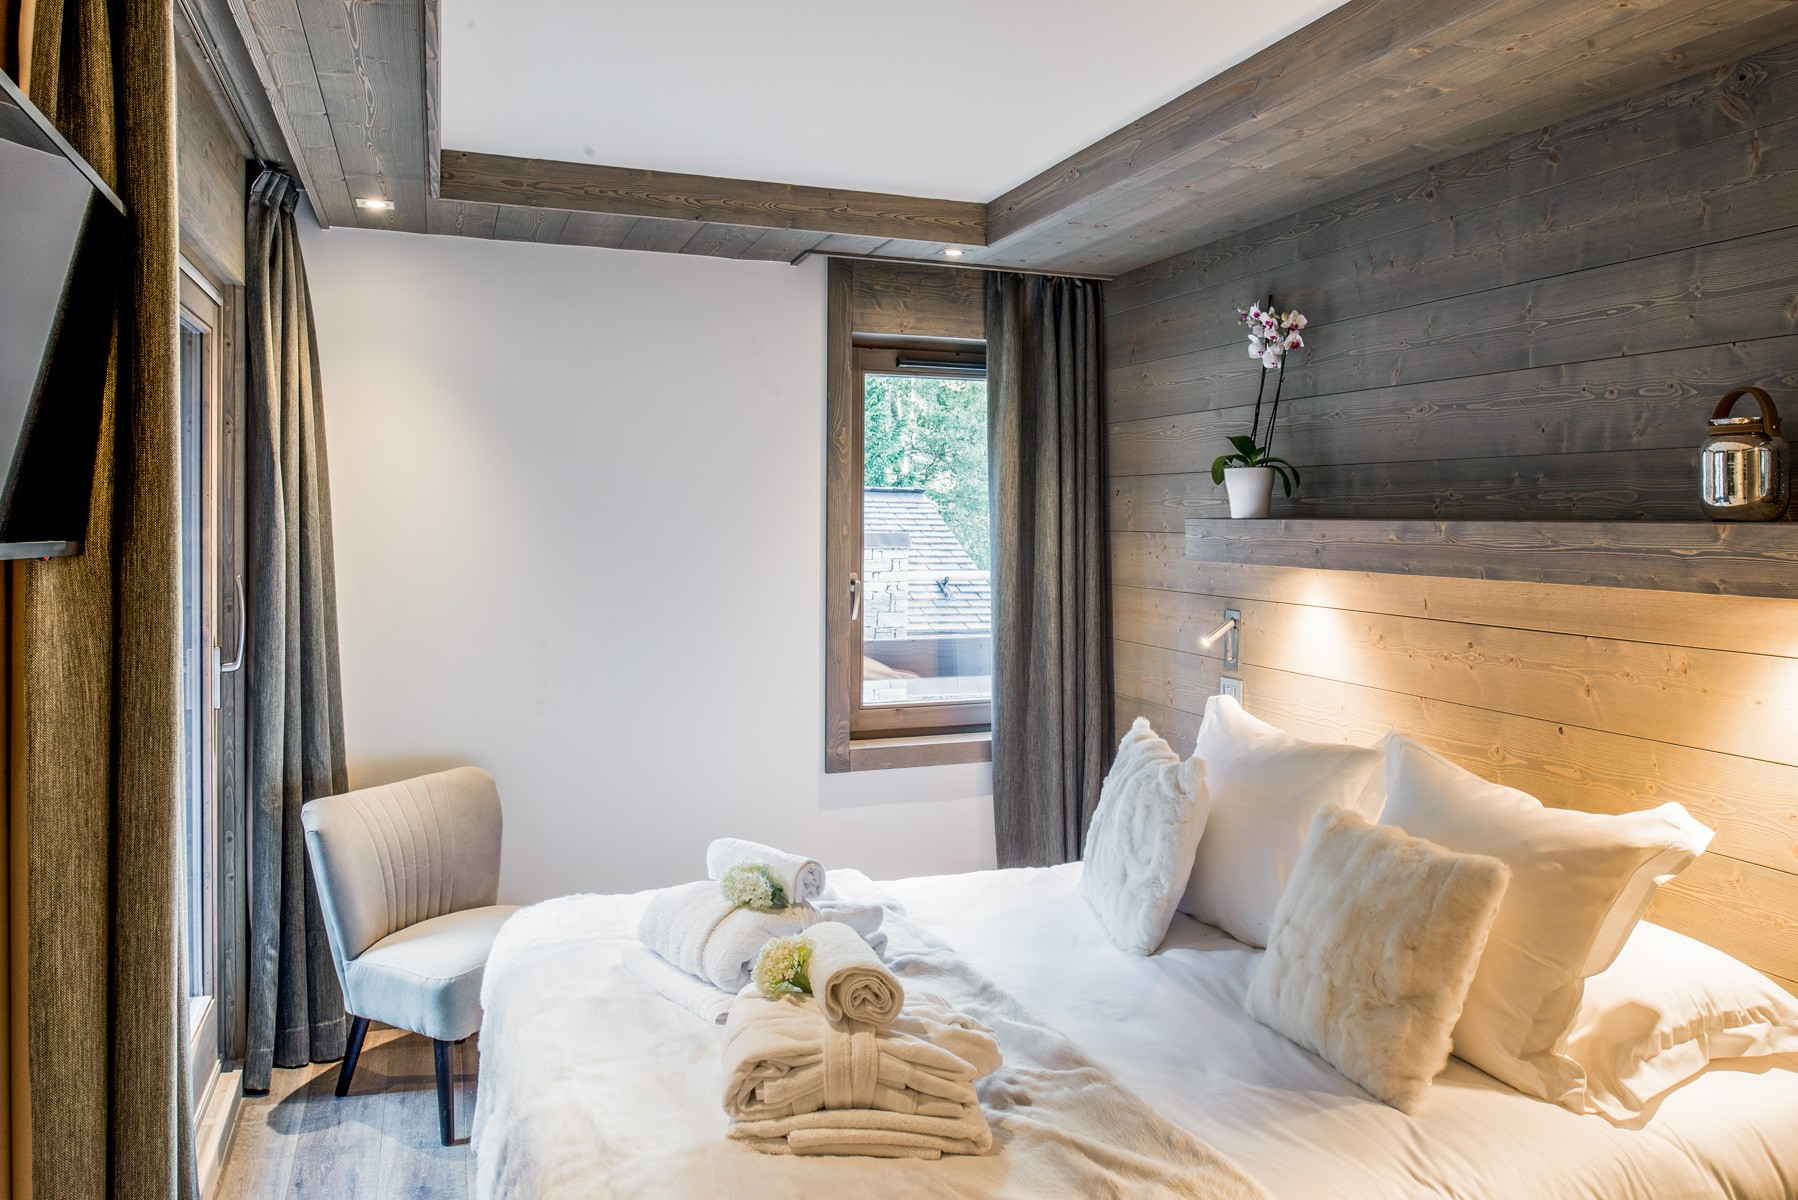 Courchevel 1650 Location Appartement Luxe Amurile Chambre 4